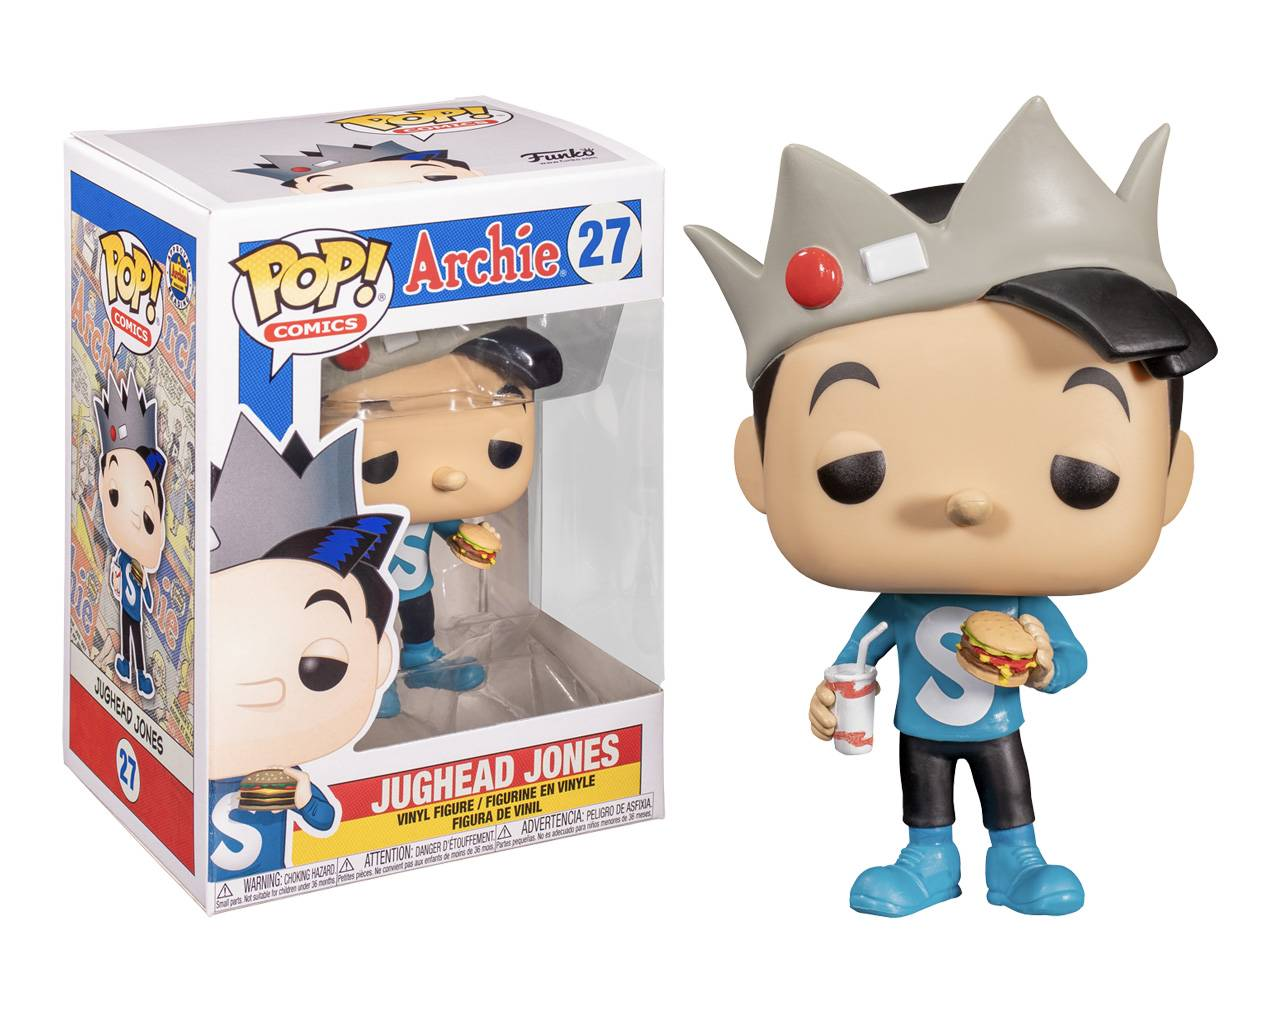 Jughead Jones Pop! Vinyl